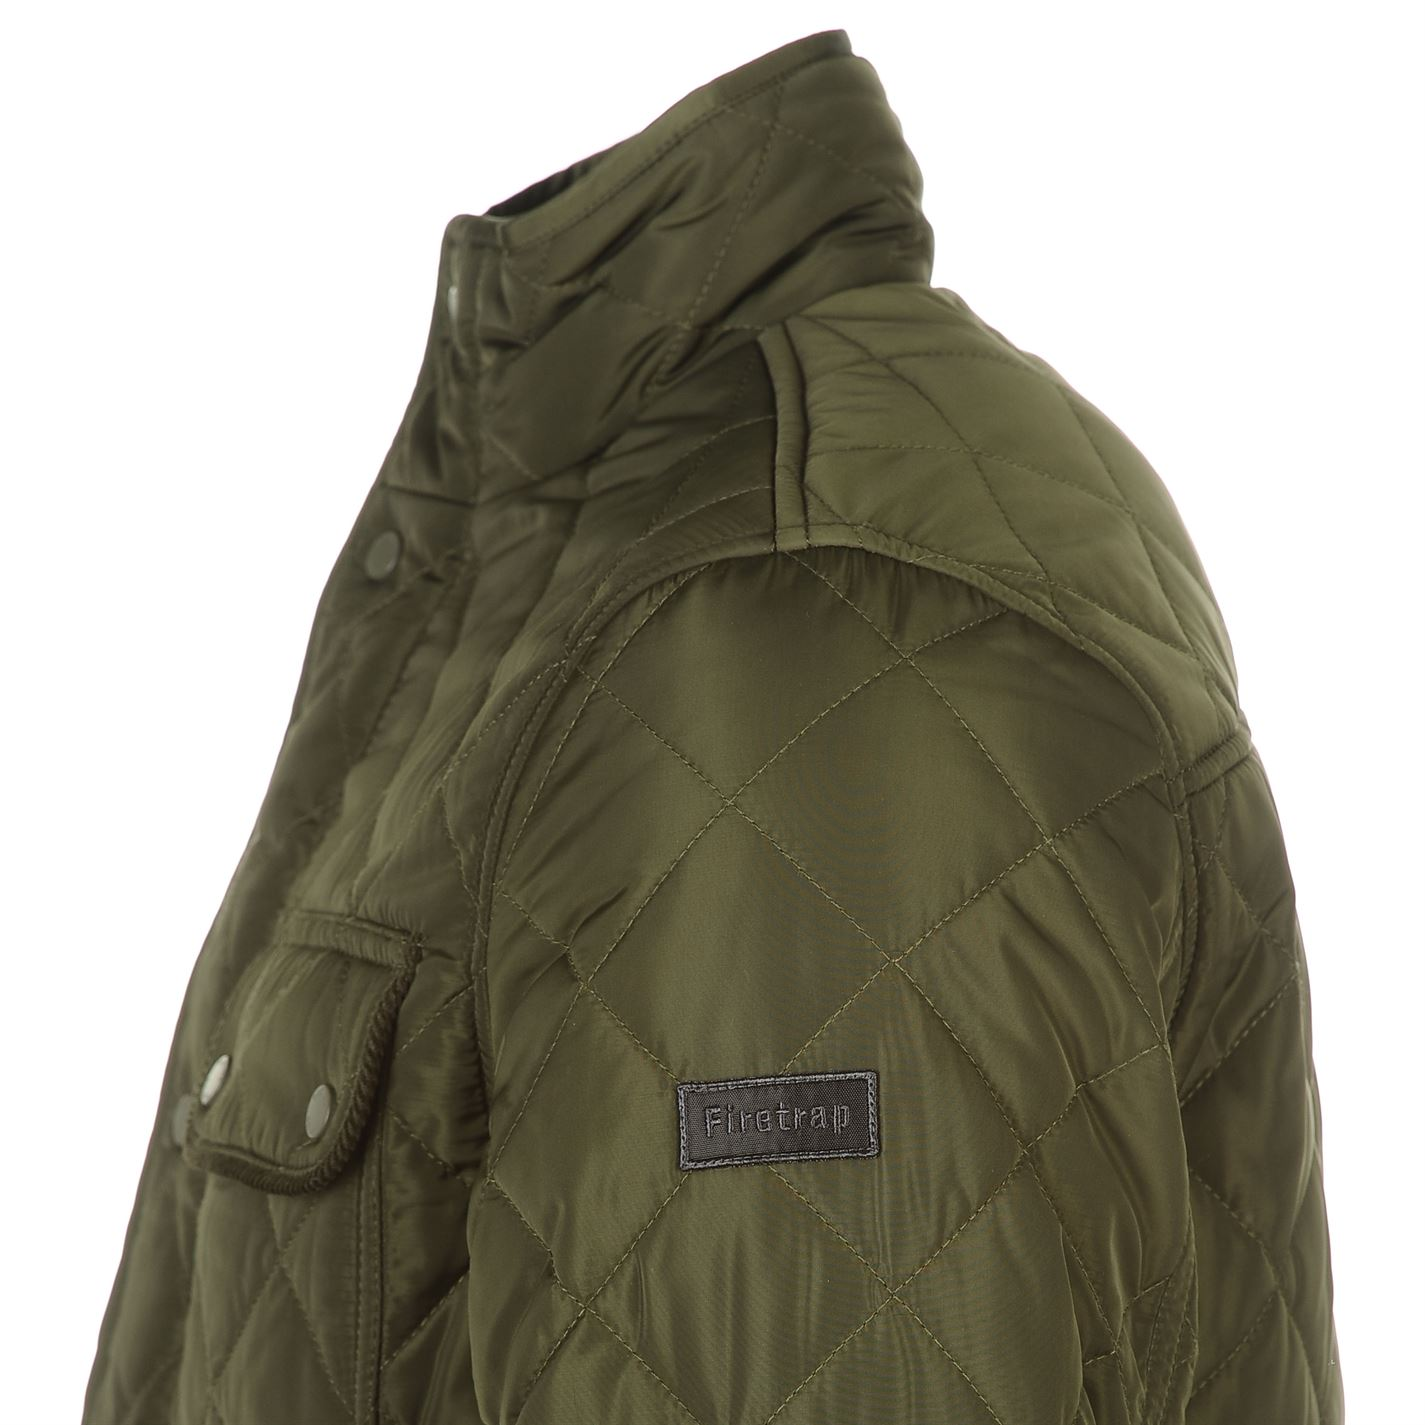 Mens-Firetrap-Kingdom-Jacket-Quilted-Long-Sleeve-New thumbnail 14